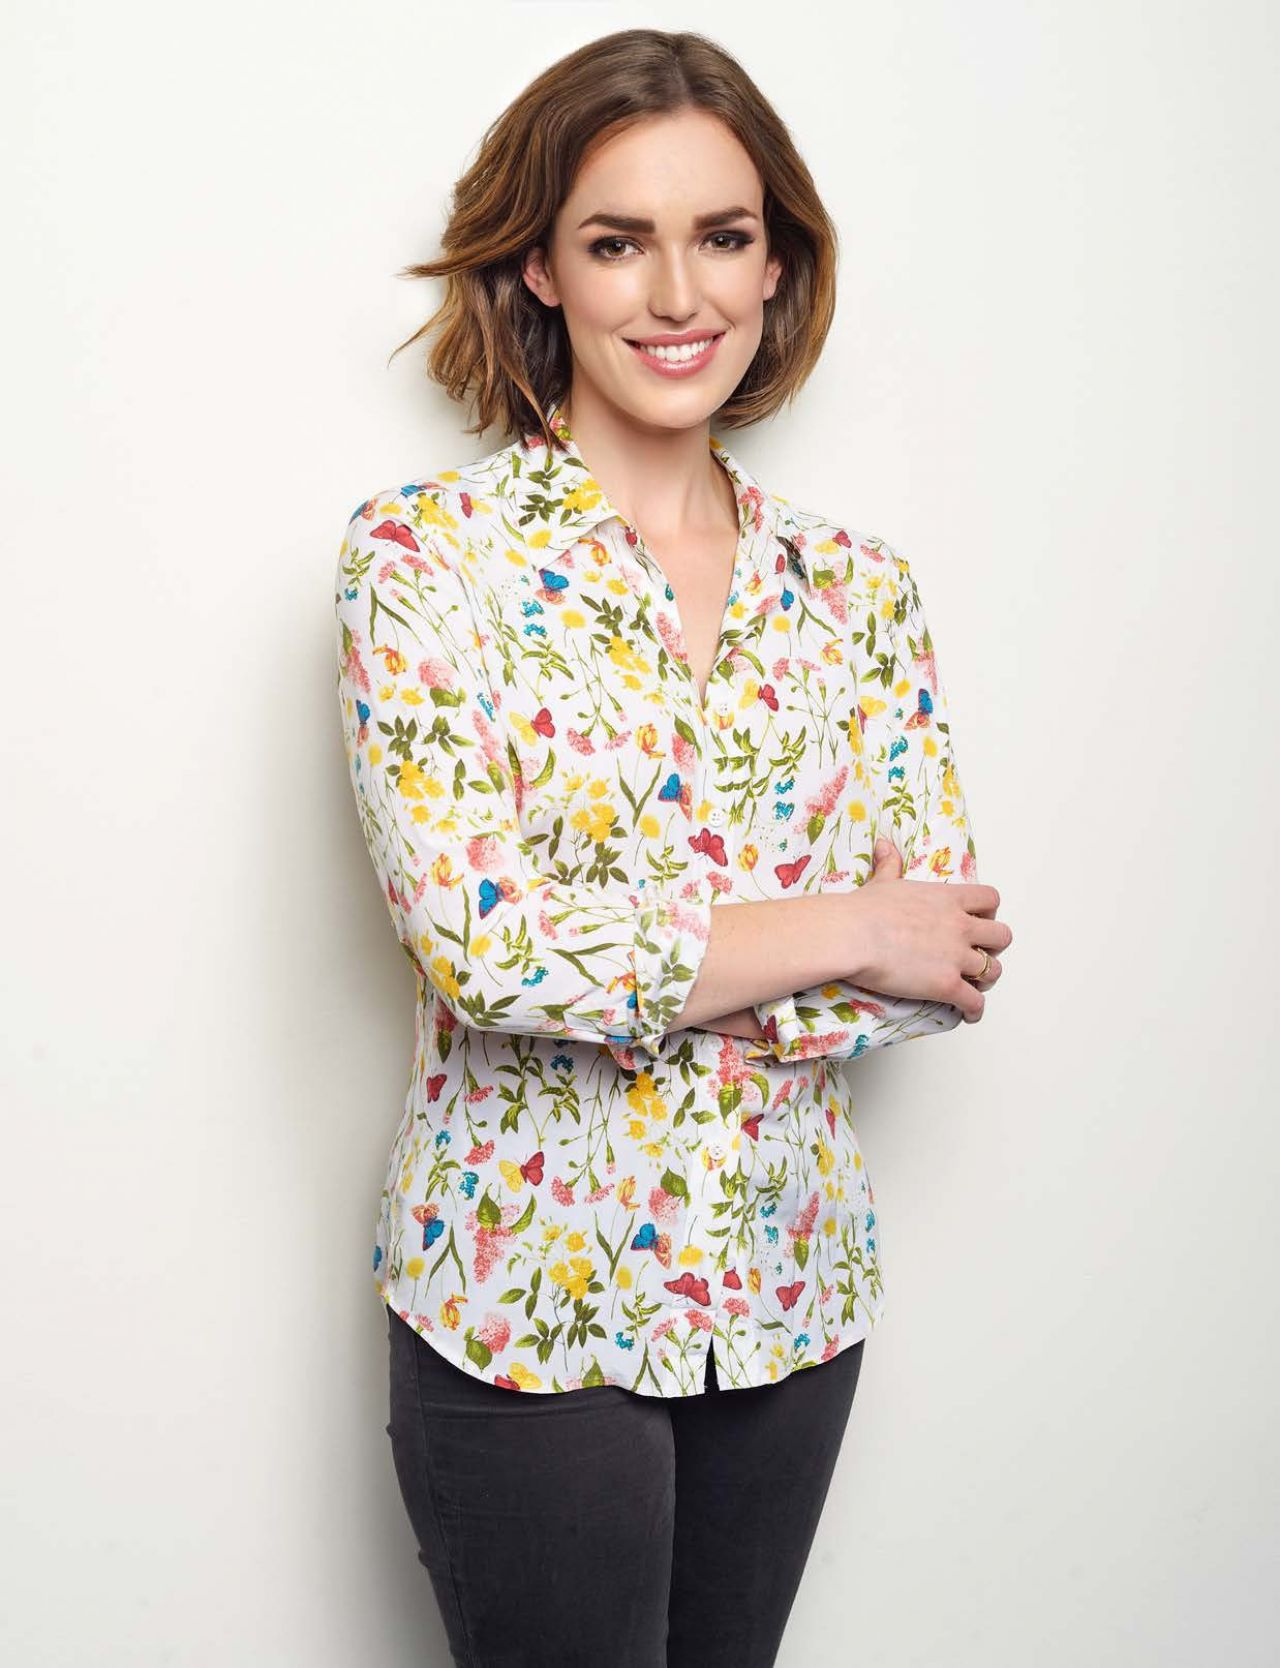 elizabeth henstridge movie listelizabeth henstridge gif, elizabeth henstridge photoshoot, elizabeth henstridge tumblr, elizabeth henstridge listal, elizabeth henstridge site, elizabeth henstridge fan, elizabeth henstridge fansite, elizabeth henstridge gallery, elizabeth henstridge movie list, elizabeth henstridge danielle panabaker, elizabeth henstridge looks like, elizabeth henstridge hollyoaks, elizabeth henstridge instagram, elizabeth henstridge photo gallery, elizabeth henstridge twitter, elizabeth henstridge boyfriend, elizabeth henstridge wiki, elizabeth henstridge and zachary abel